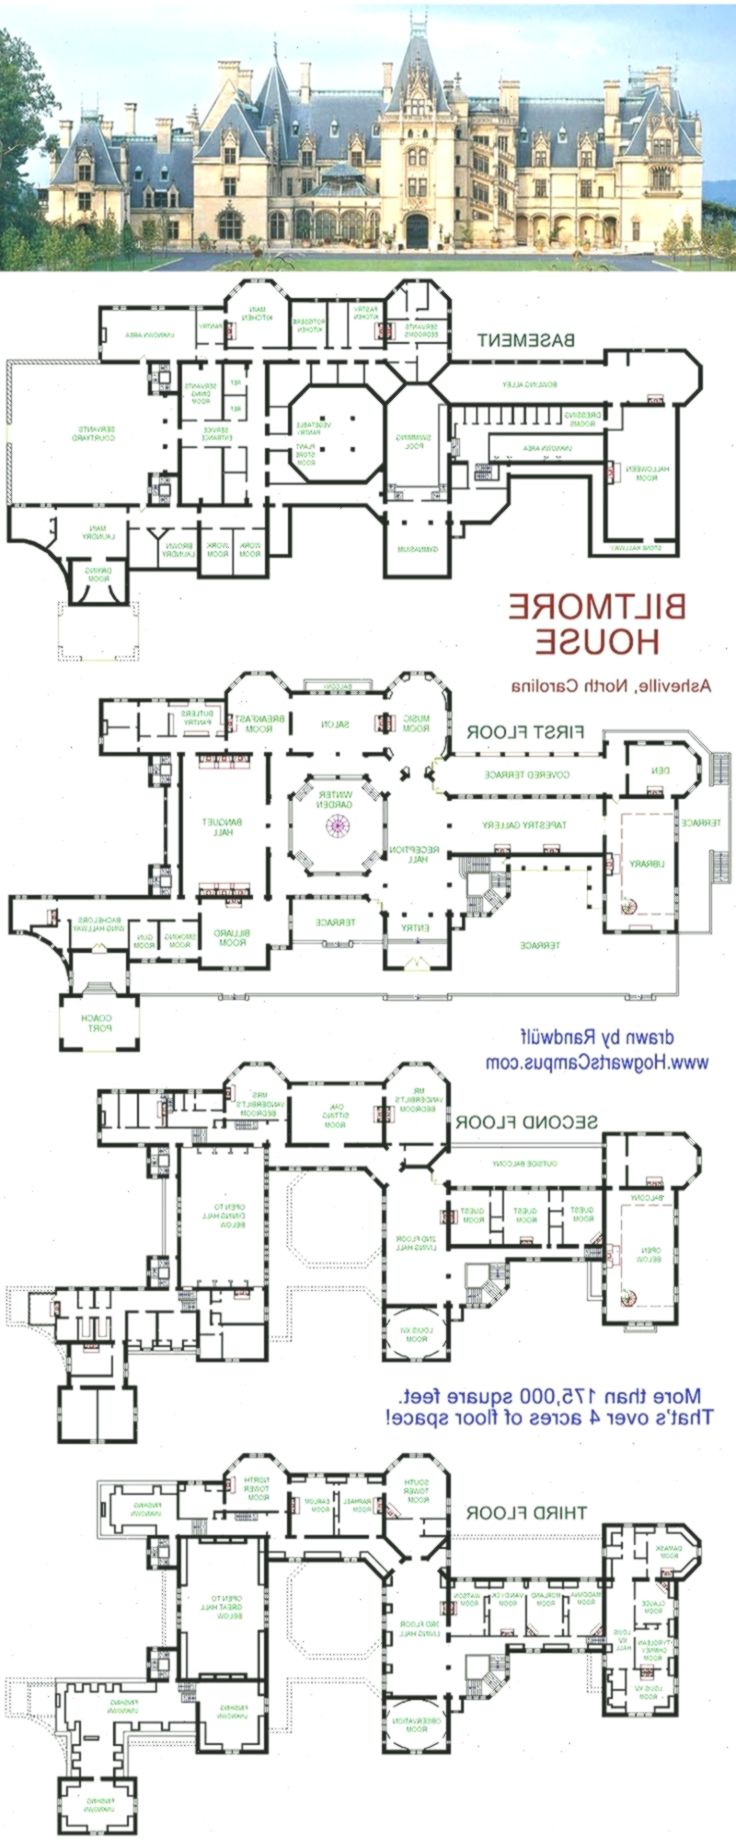 25 Best Ideas About Mansion Floor Plans On Pinterest House Pertaining To Mansion Dreamhouseplans Dr House Plans Mansion Castle Floor Plan Mansion Floor Plan